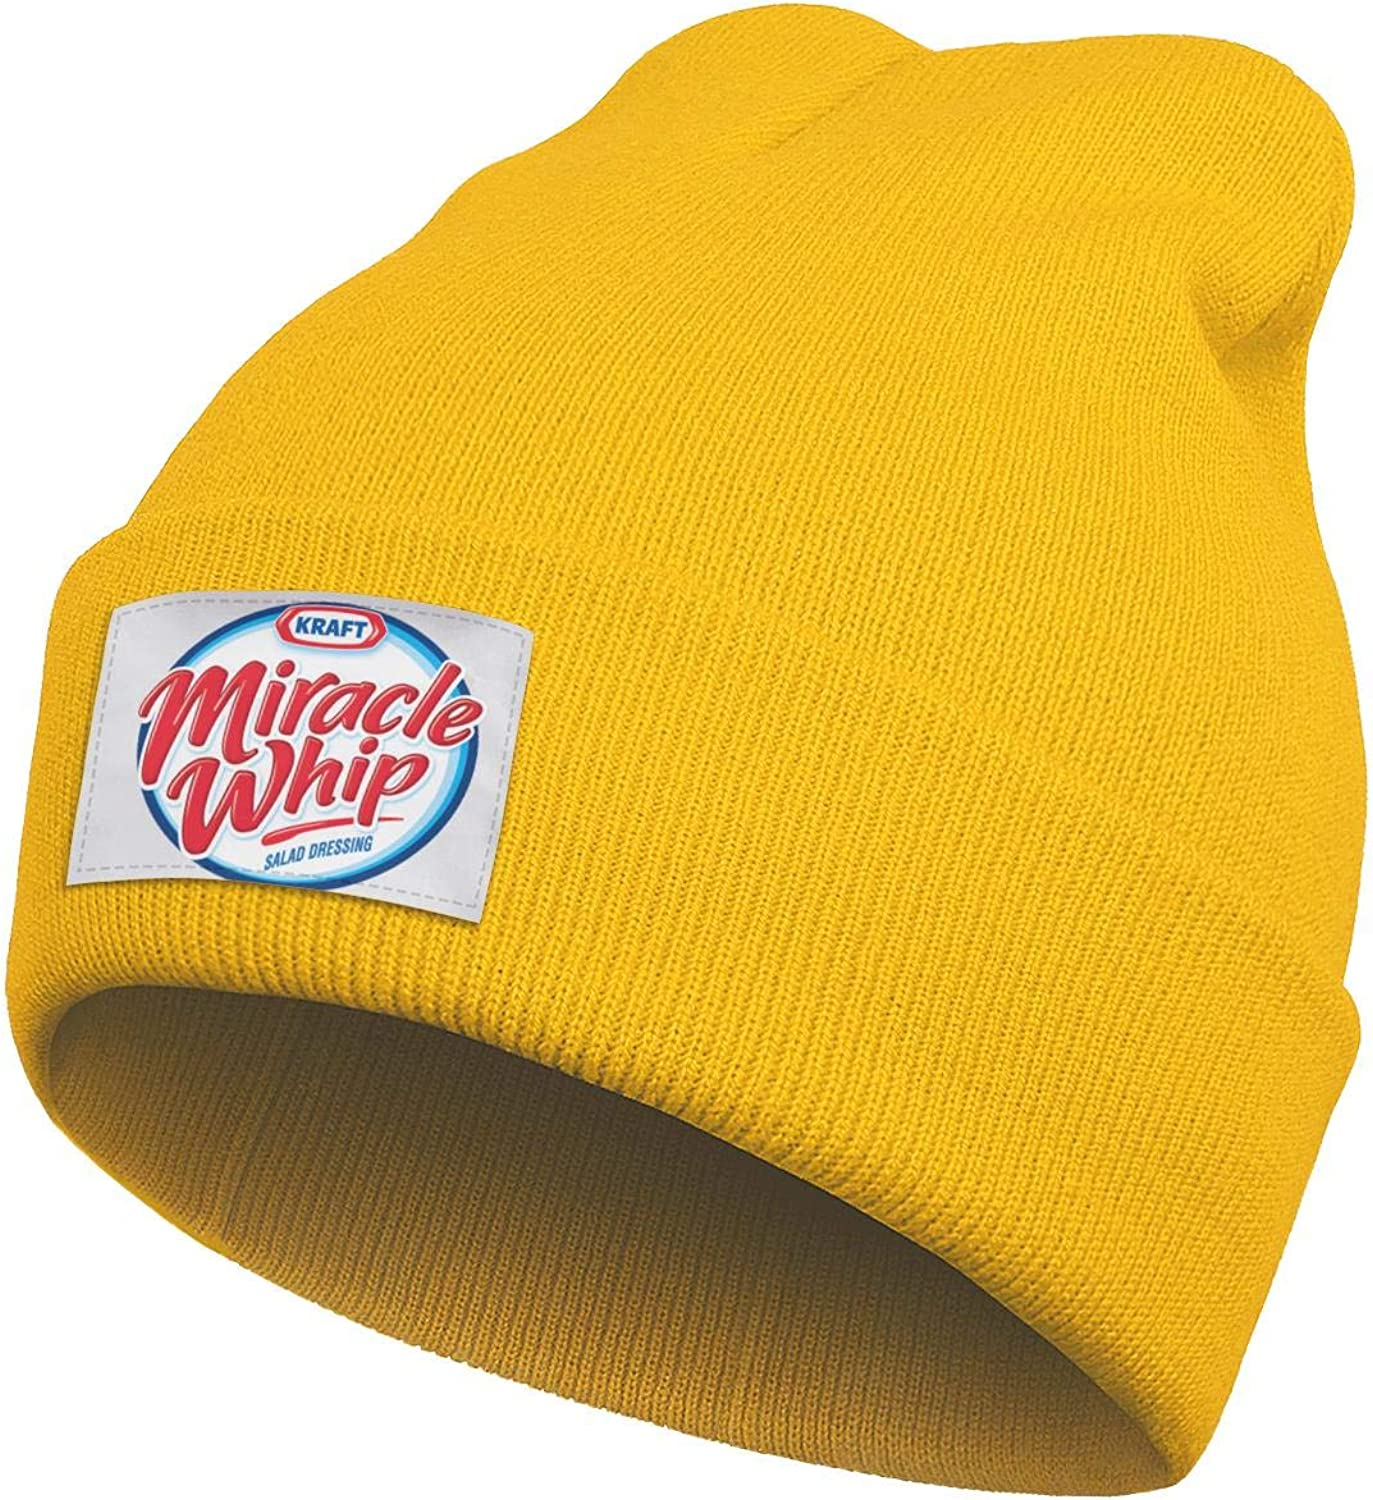 CAWFA98 Unisex Personalised Lowensenf- Winter Thick Fine Knit Hat Soft Yellow Beanie Caps